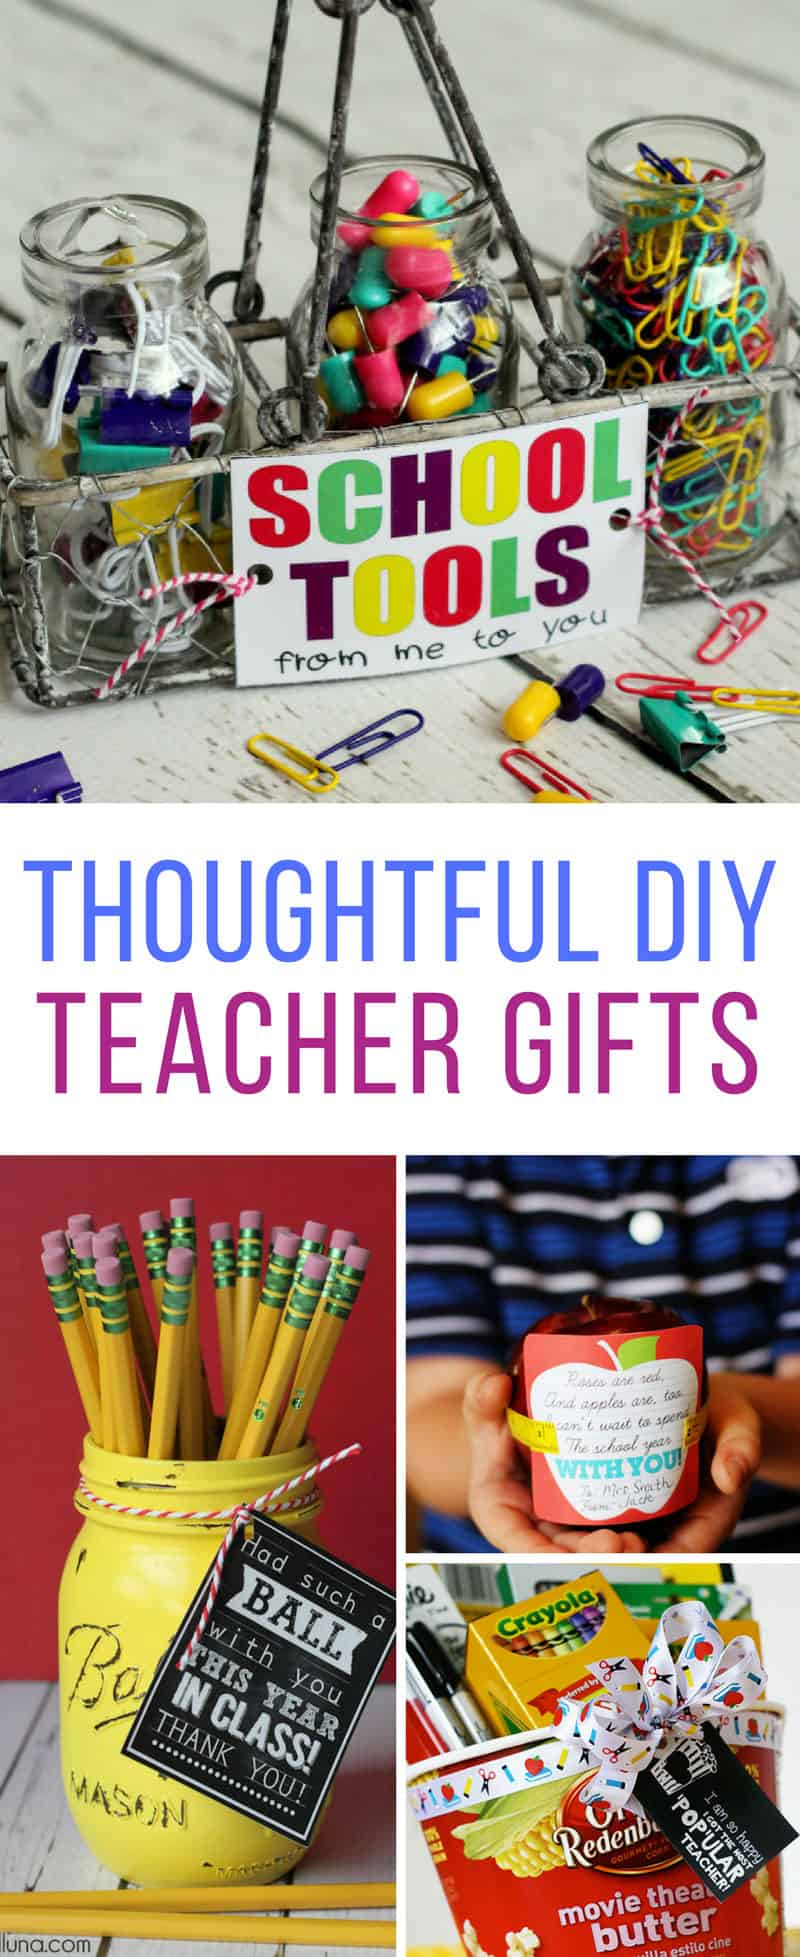 These Back to School DIY teacher gifts are perfect! Thanks for sharing!